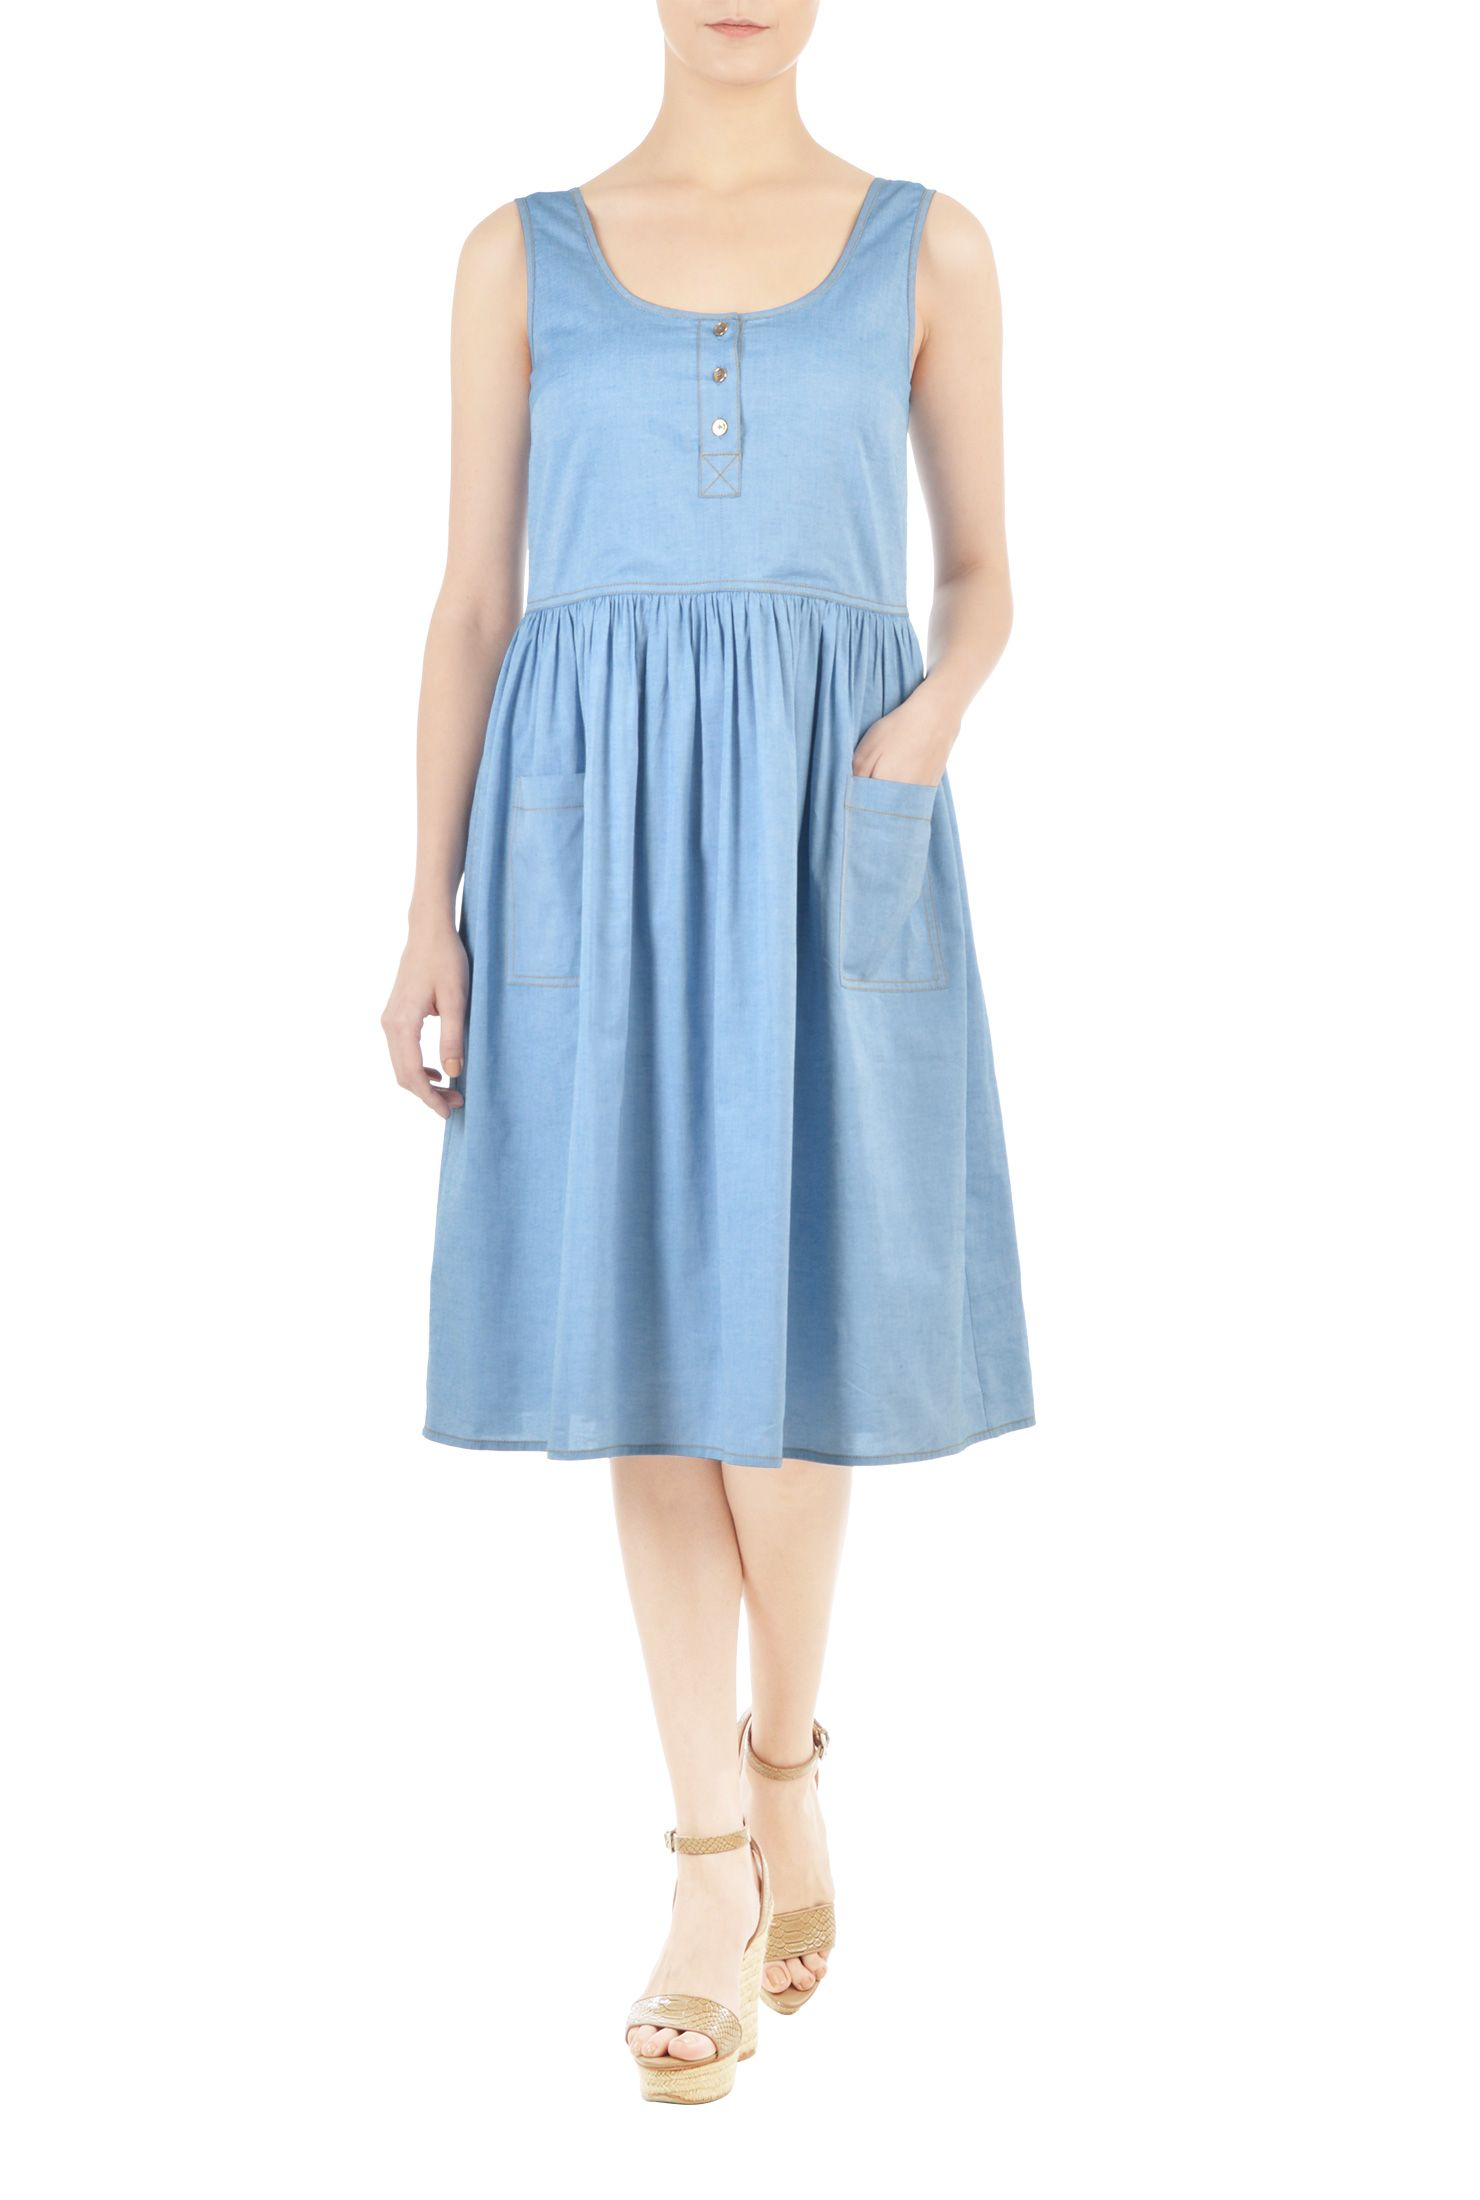 Seamed waist chambray trapeze dress | Custom clothes, Chambray and ...